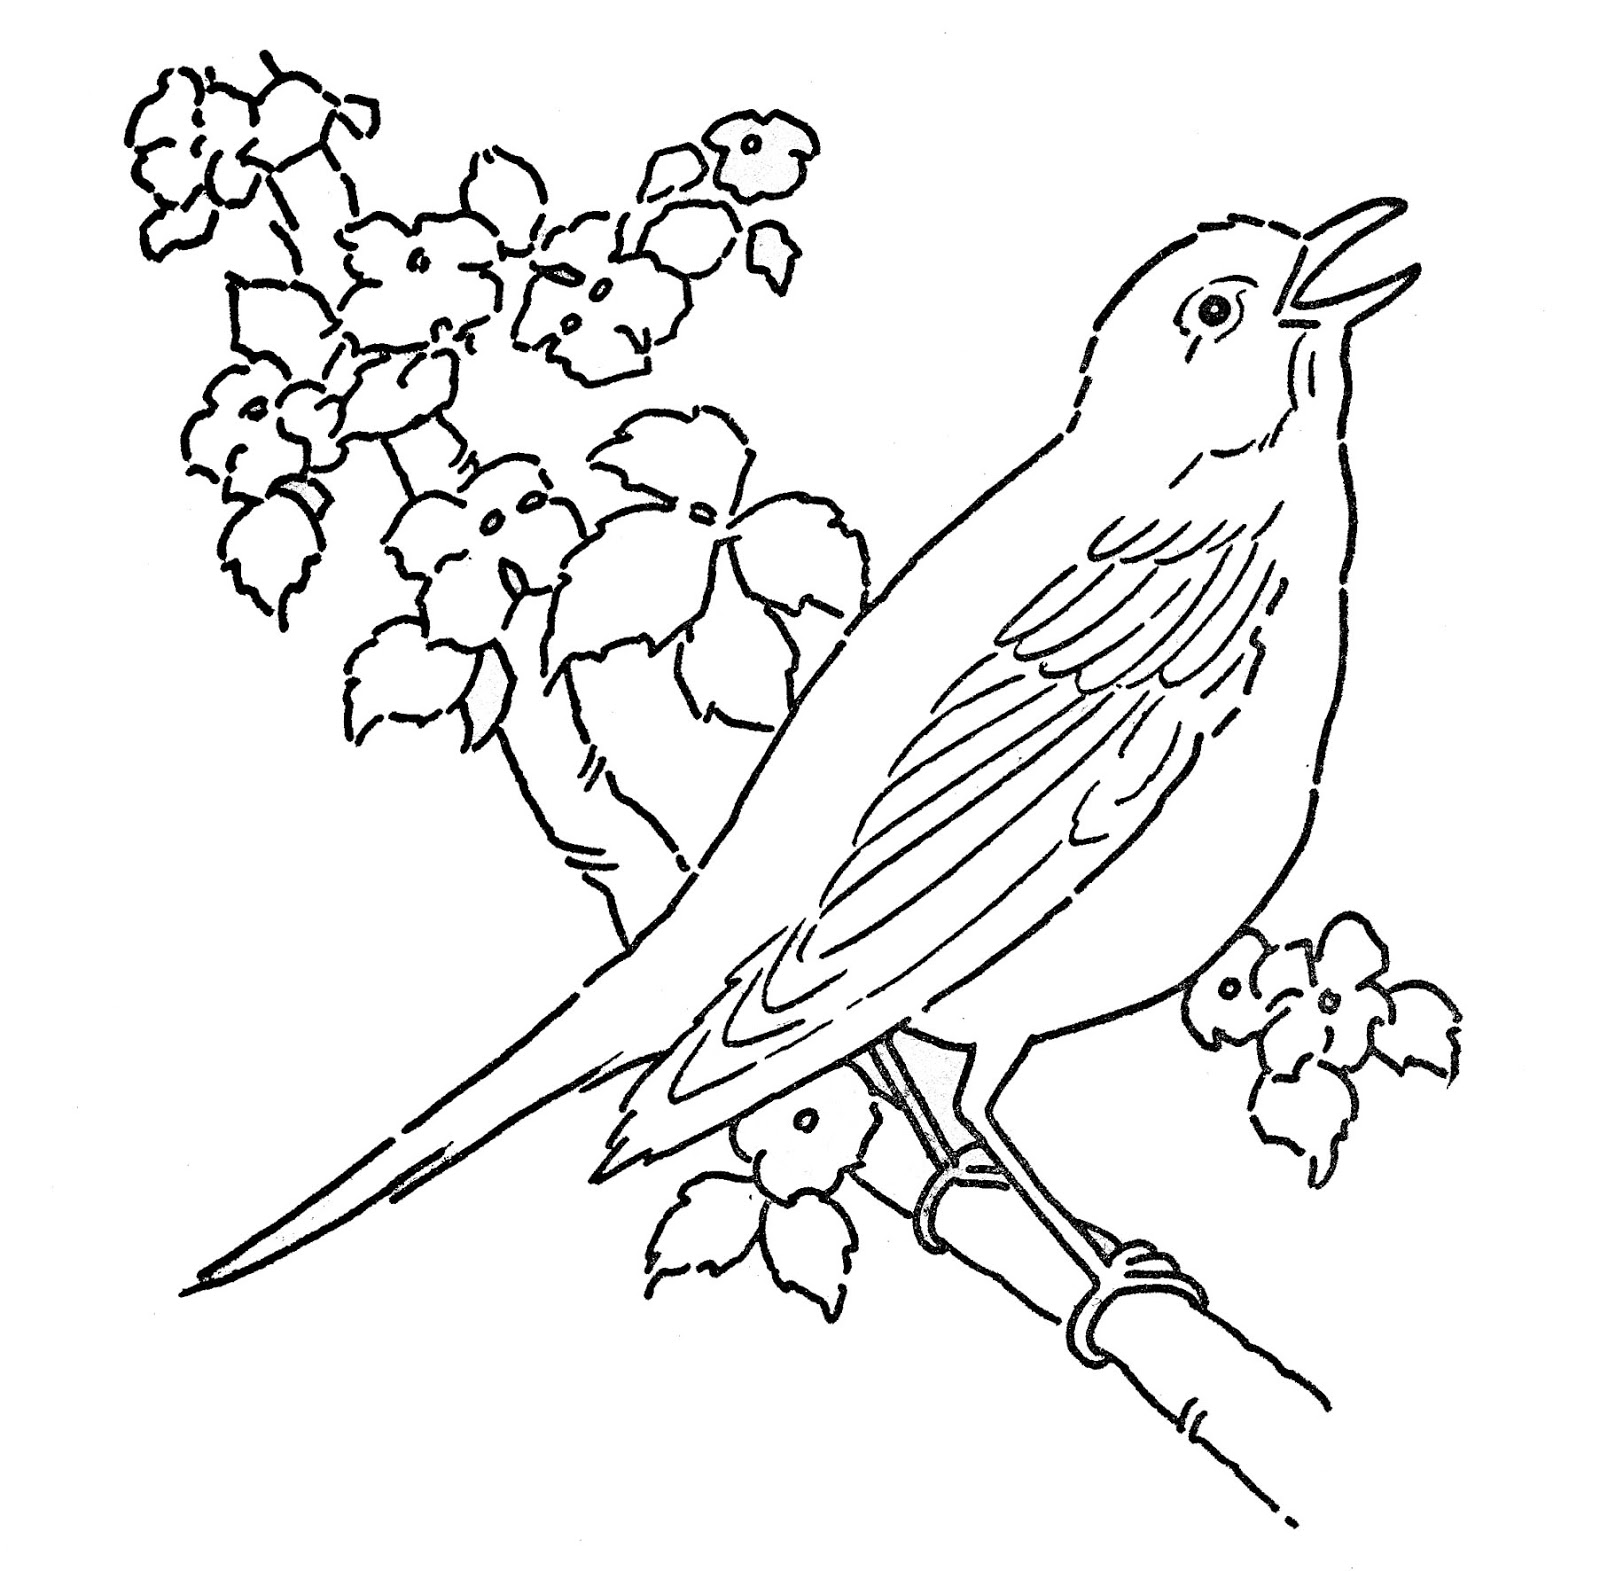 Line Art - Coloring Page - Bird with Blossoms - The Graphics Fairy